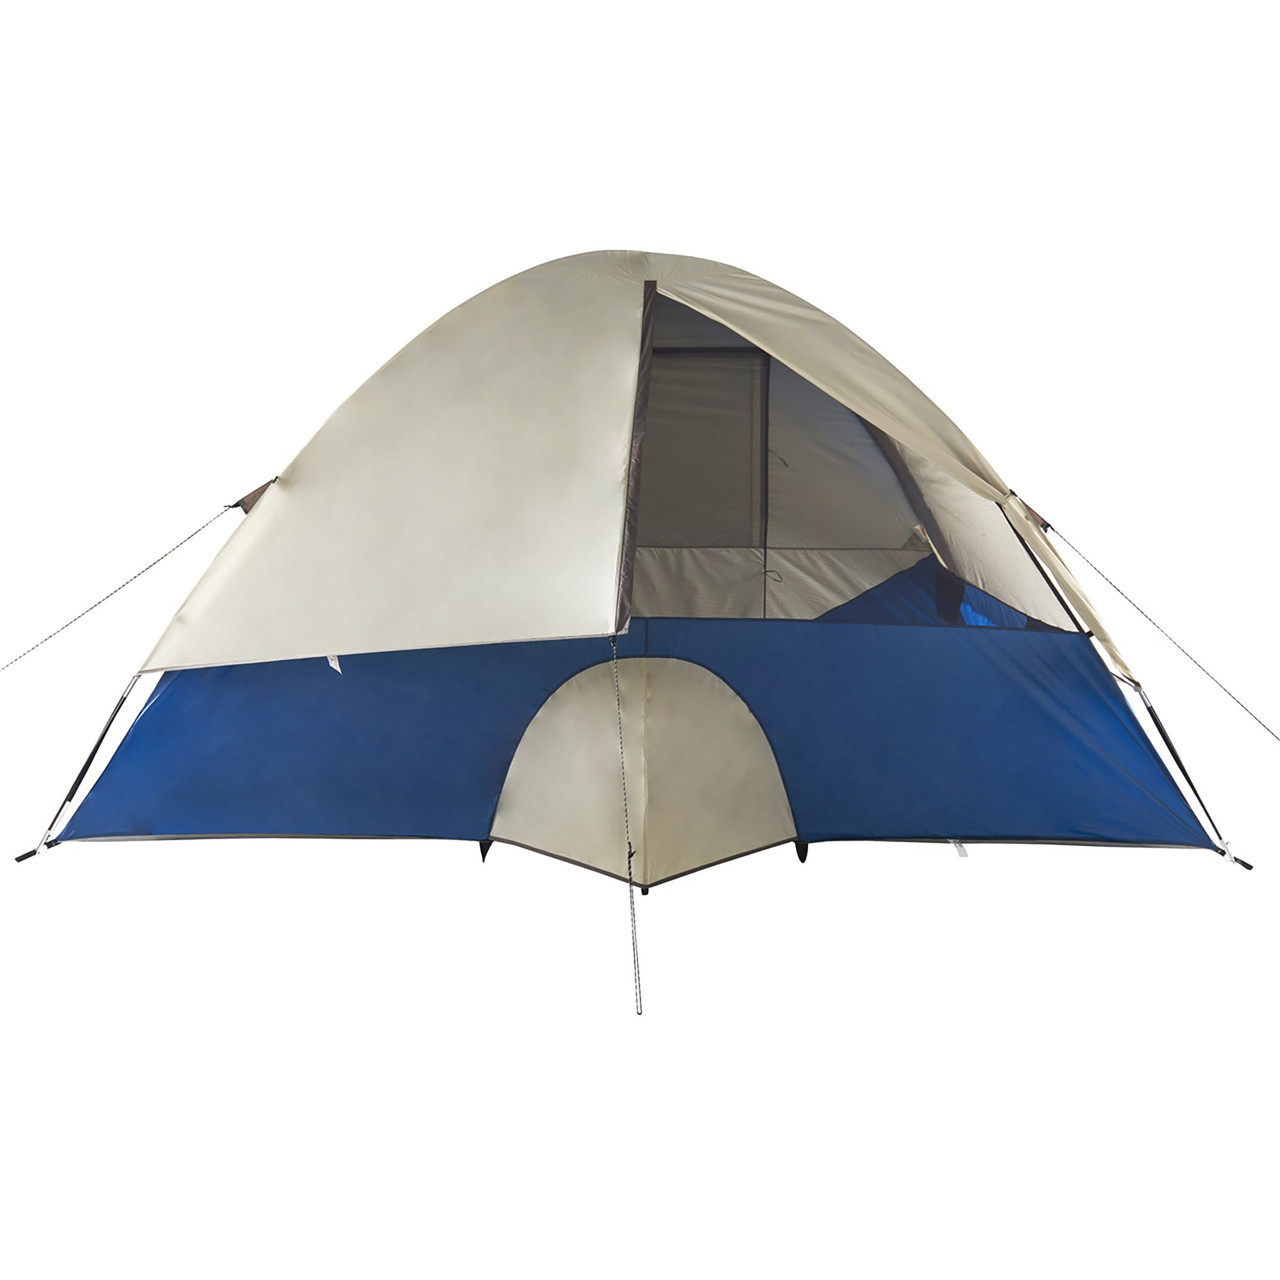 Wenzel Tamarack 6 Person Dome Tent, blue/white, rear view, with window partially closed